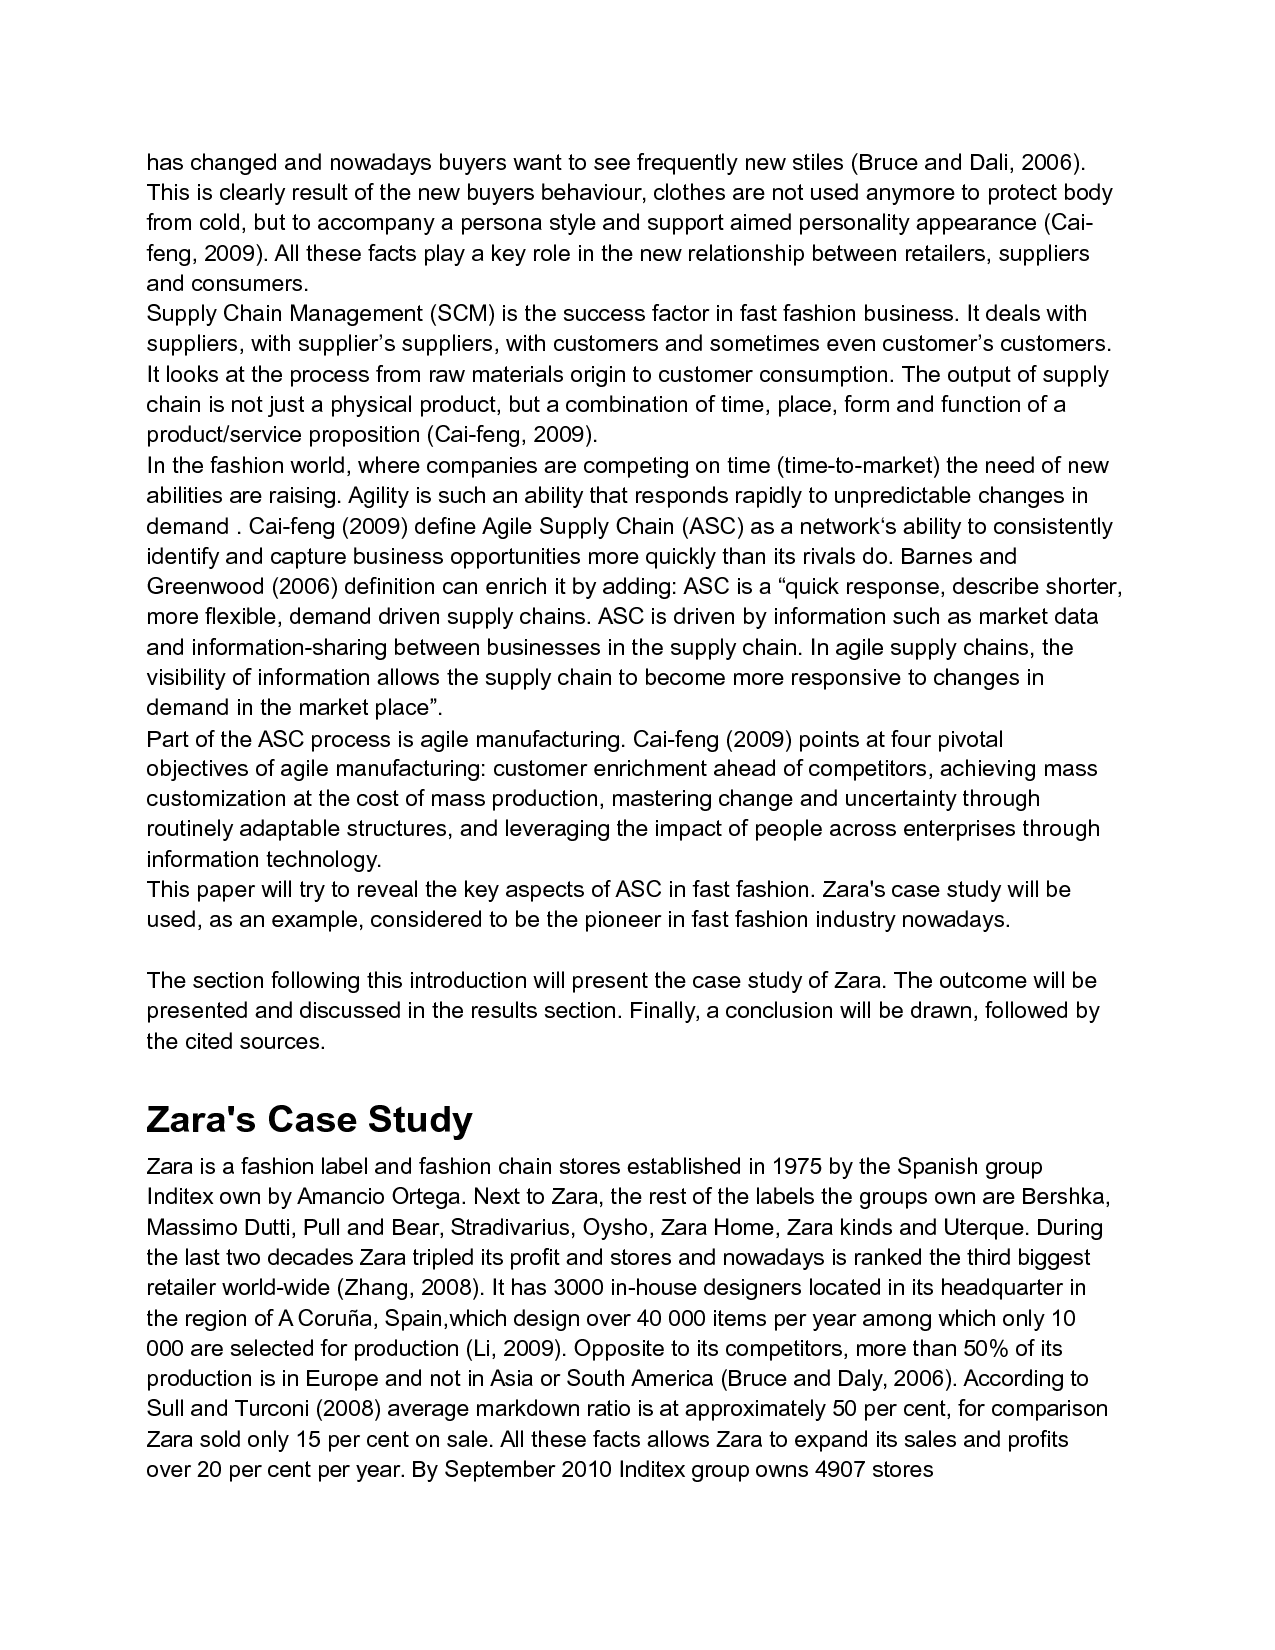 Zara Case Study Analysis Agile Supply Chain Zara S Case Study